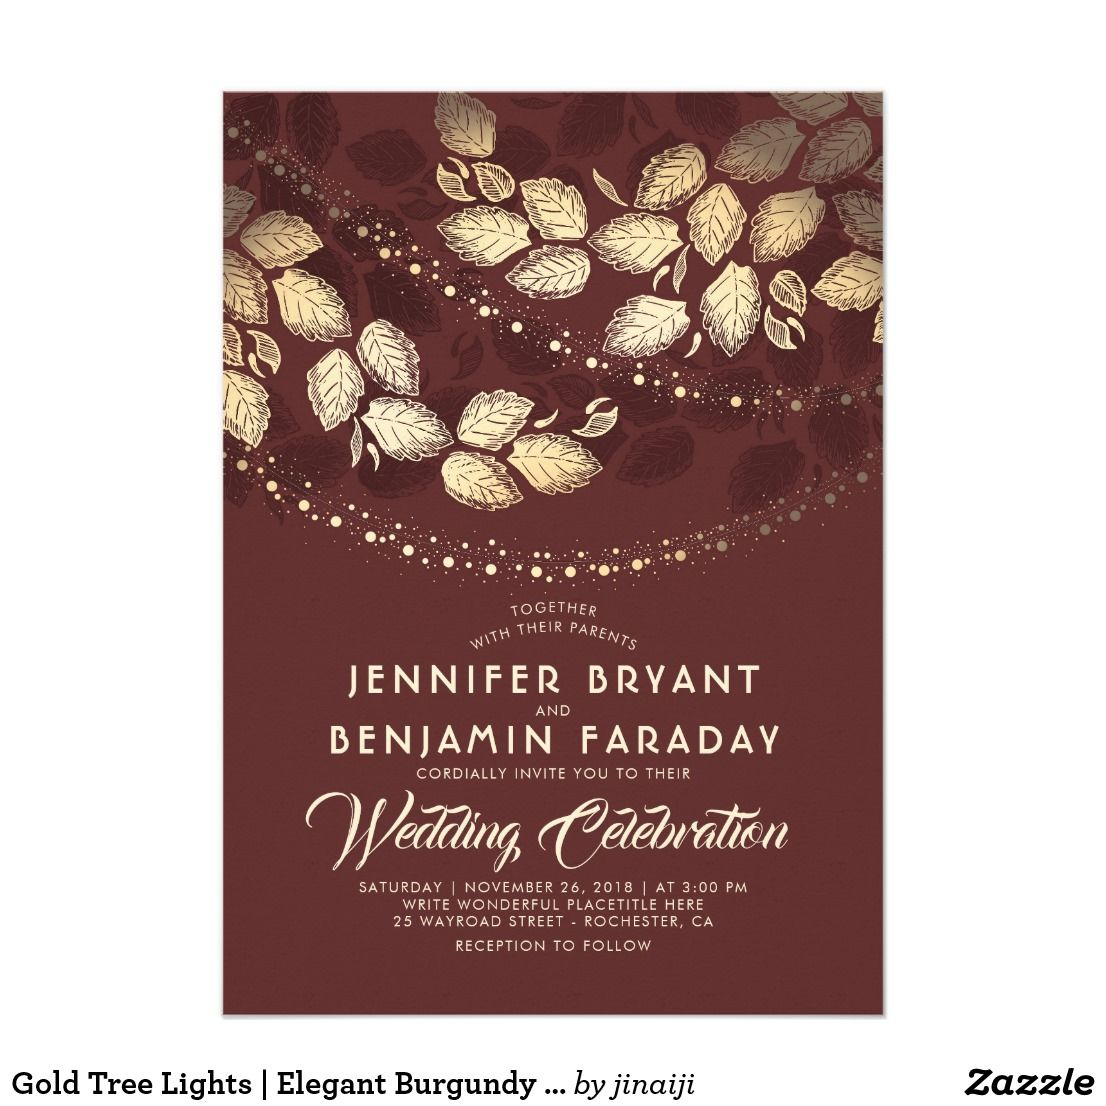 Gold Tree Lights | Elegant Burgundy Wedding Invitation | Wedding ...